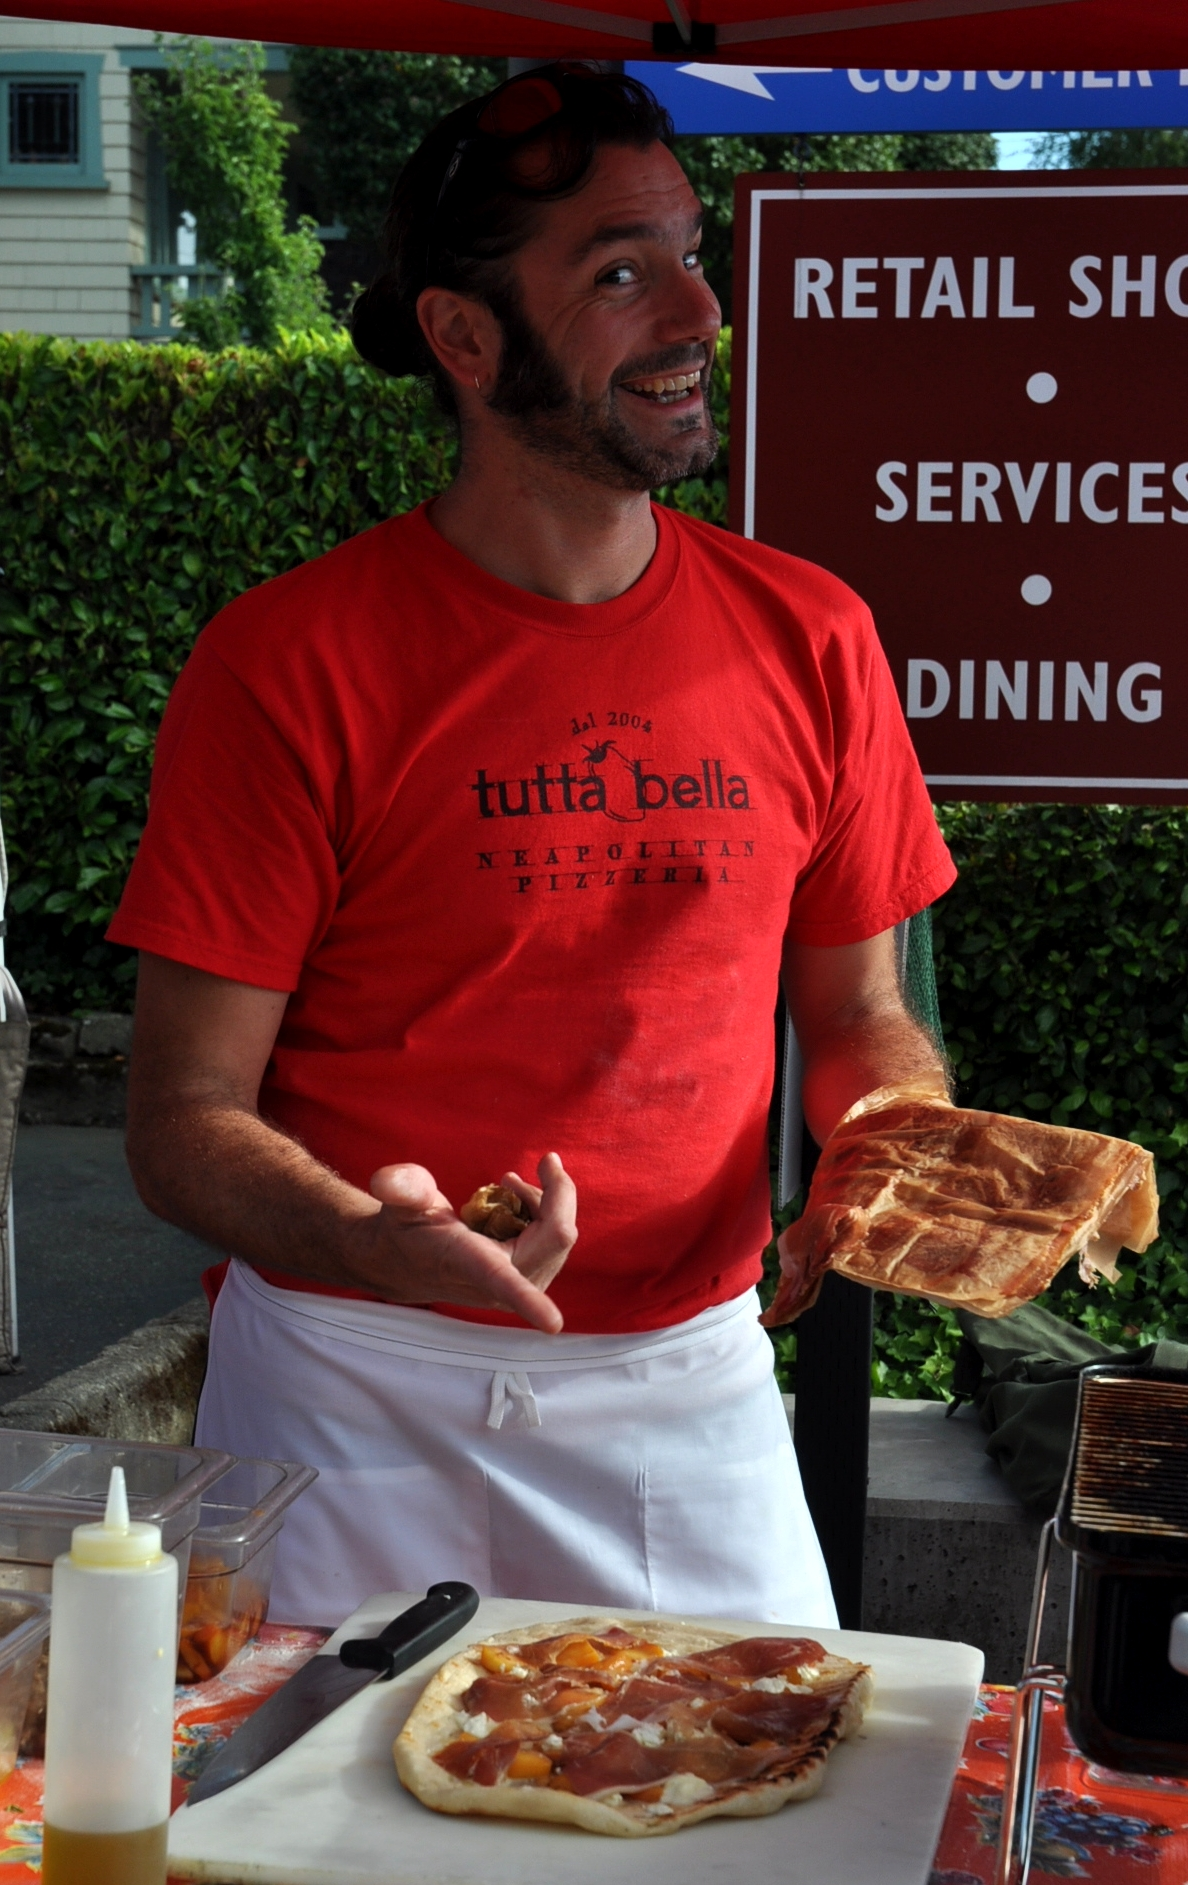 Chef Brian Gojdics from Tutta Bella. Photo copyright 2010 by Zachary D. Lyons.